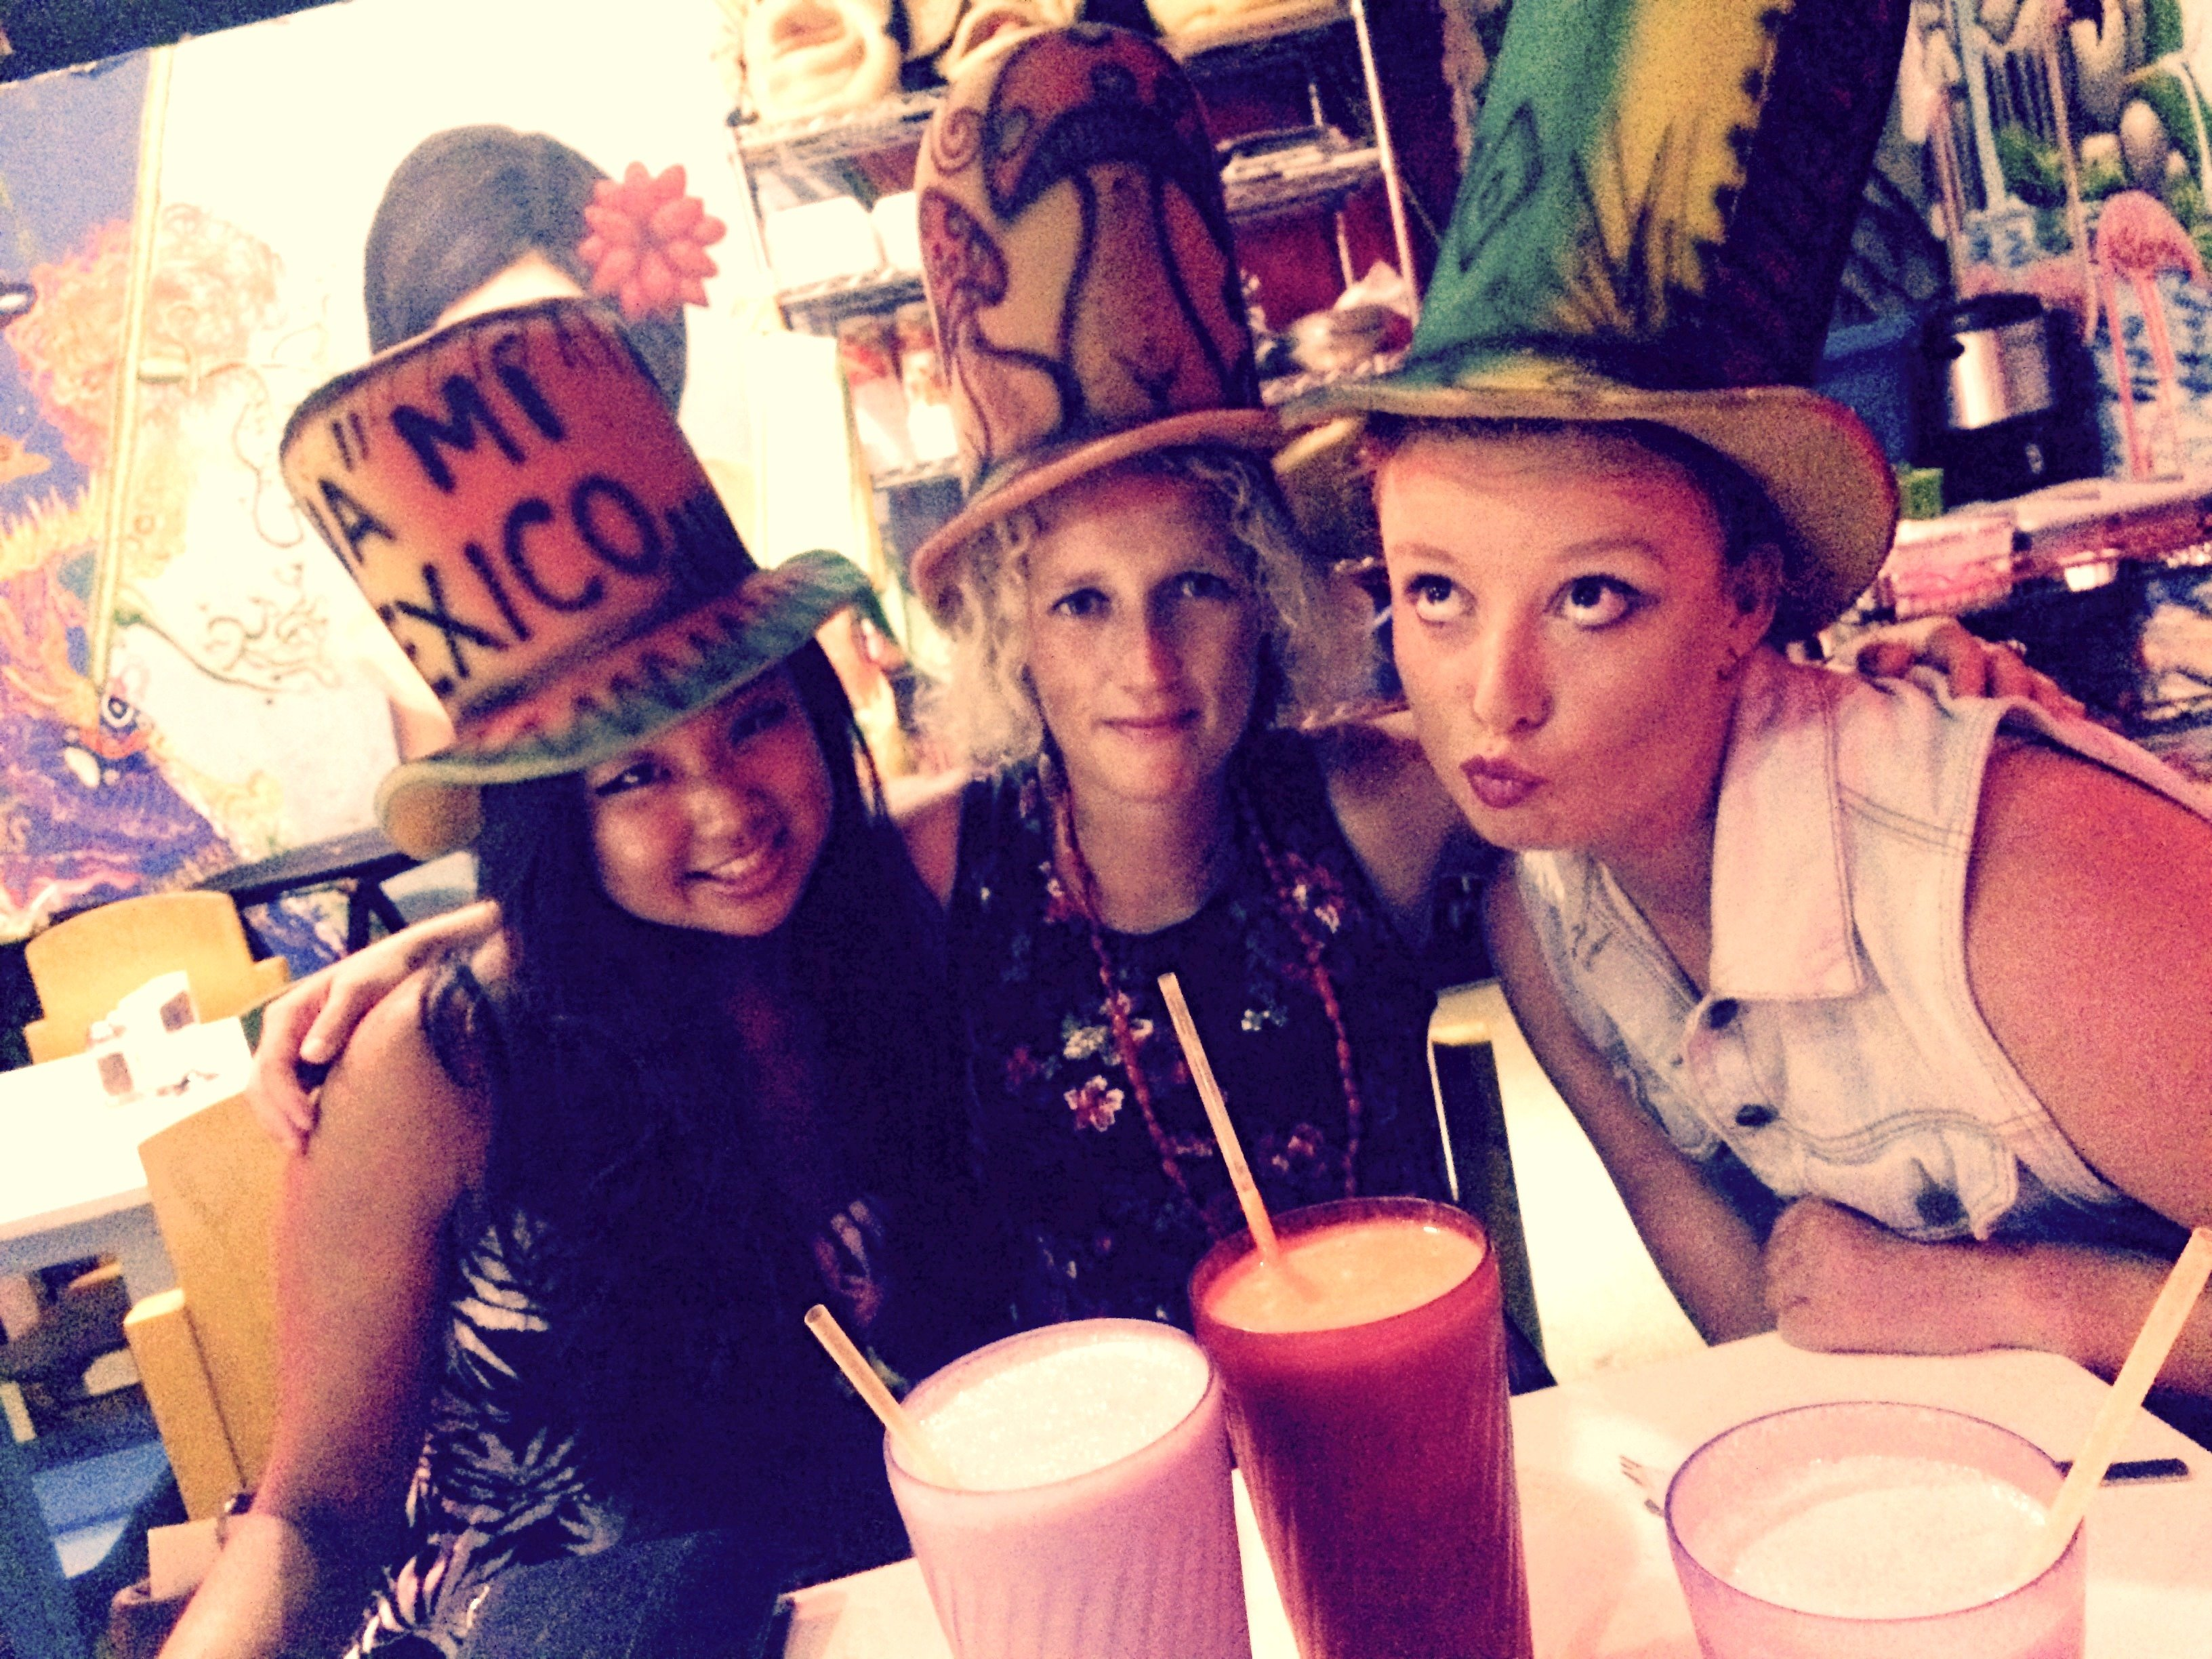 7. Picture of angie, me and jeannie edited